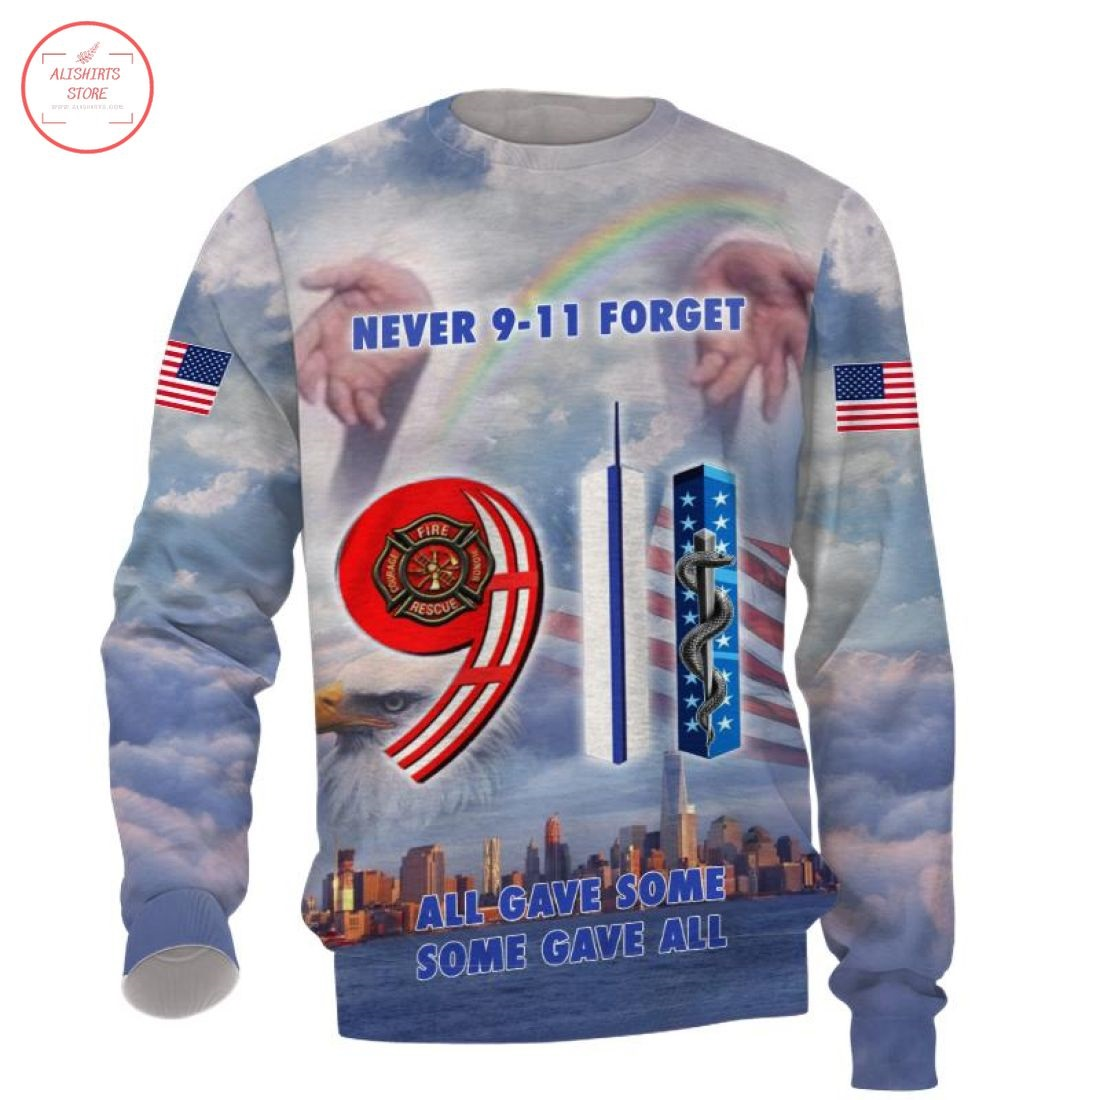 We will never forget 9-11Shirts 3D Full Printing